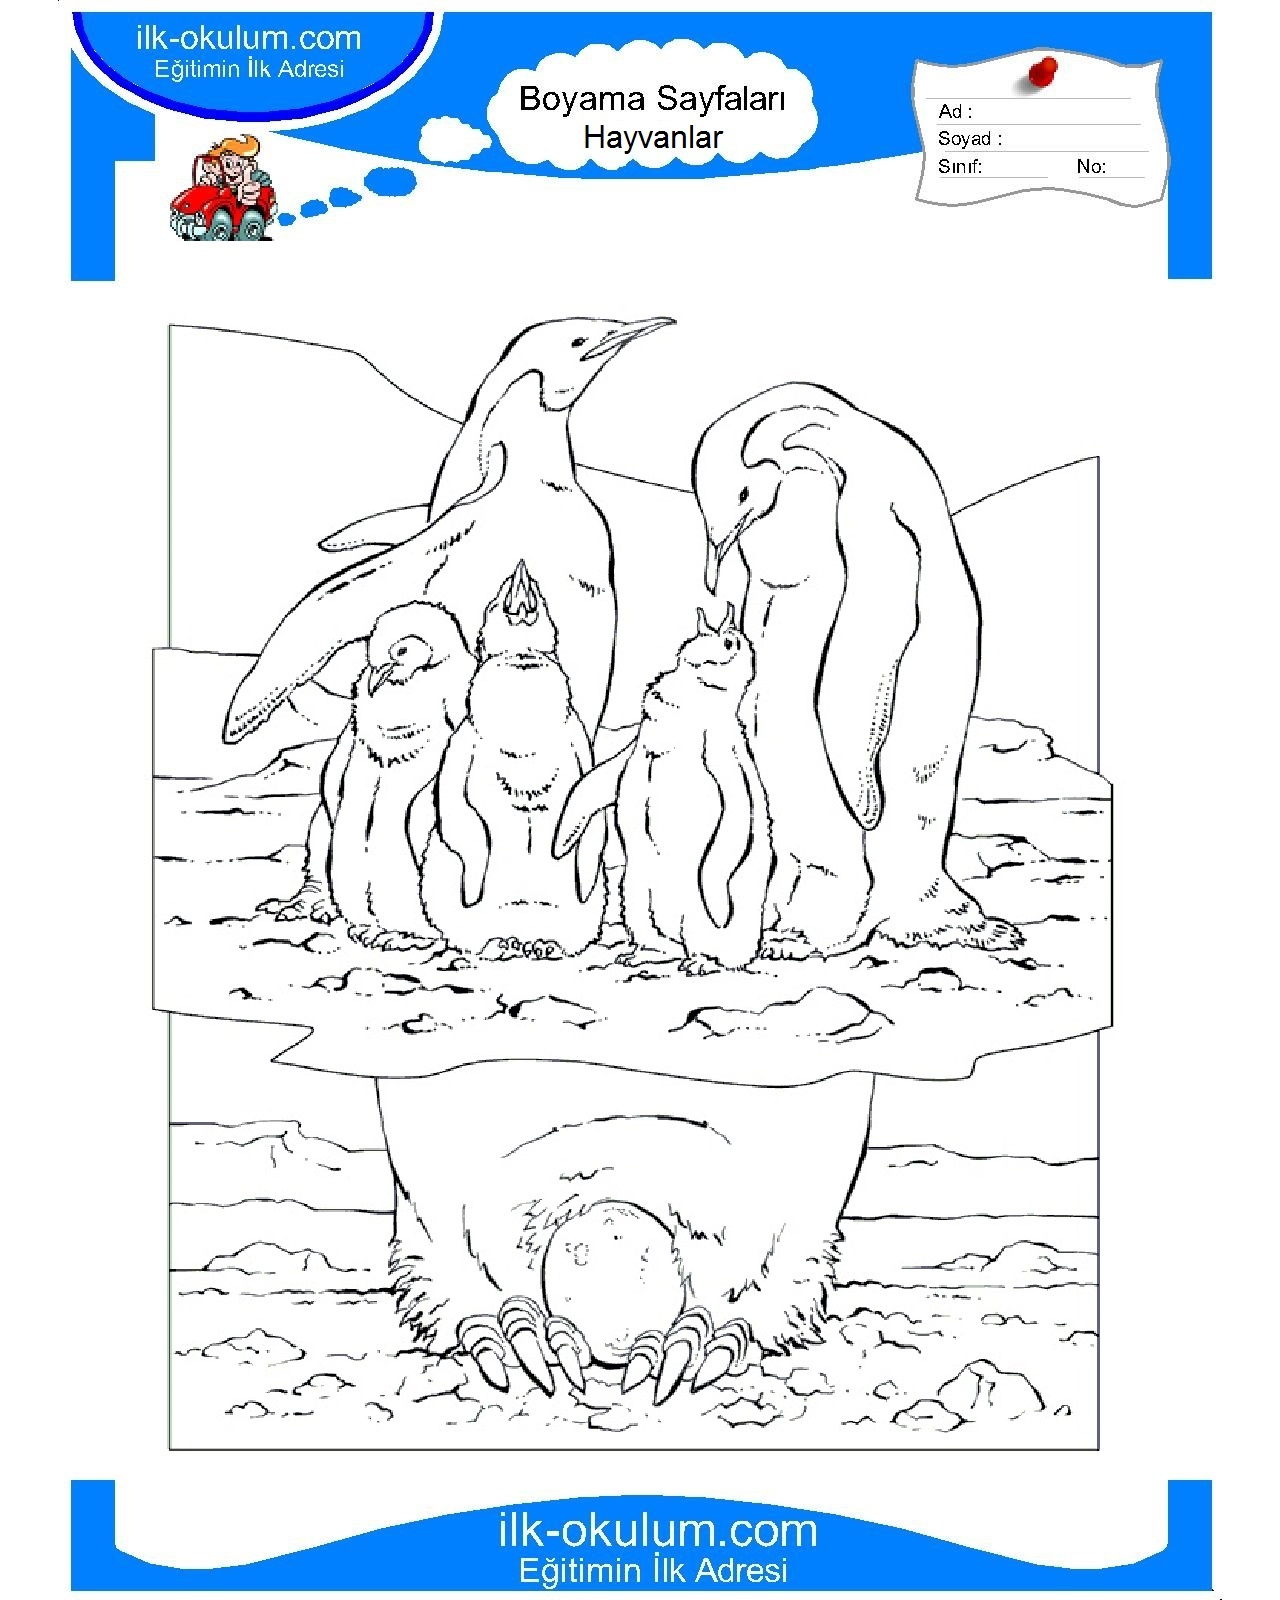 National geographic coloring book animals - a-k-b.info